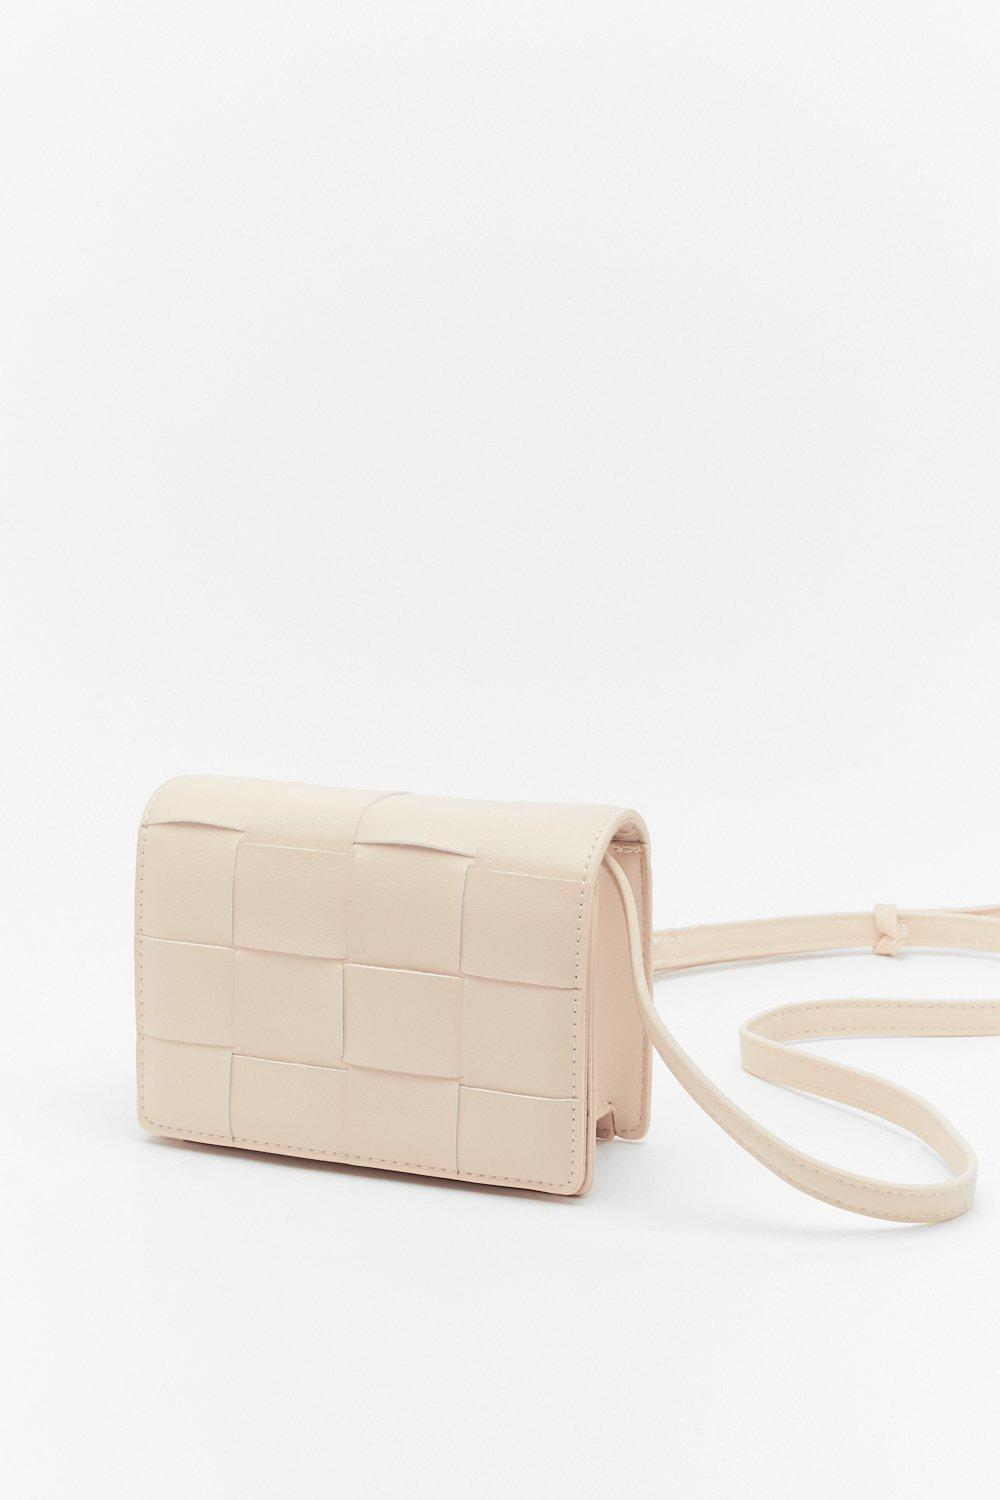 Image of WANT You've Been Woven Faux Leather Bag